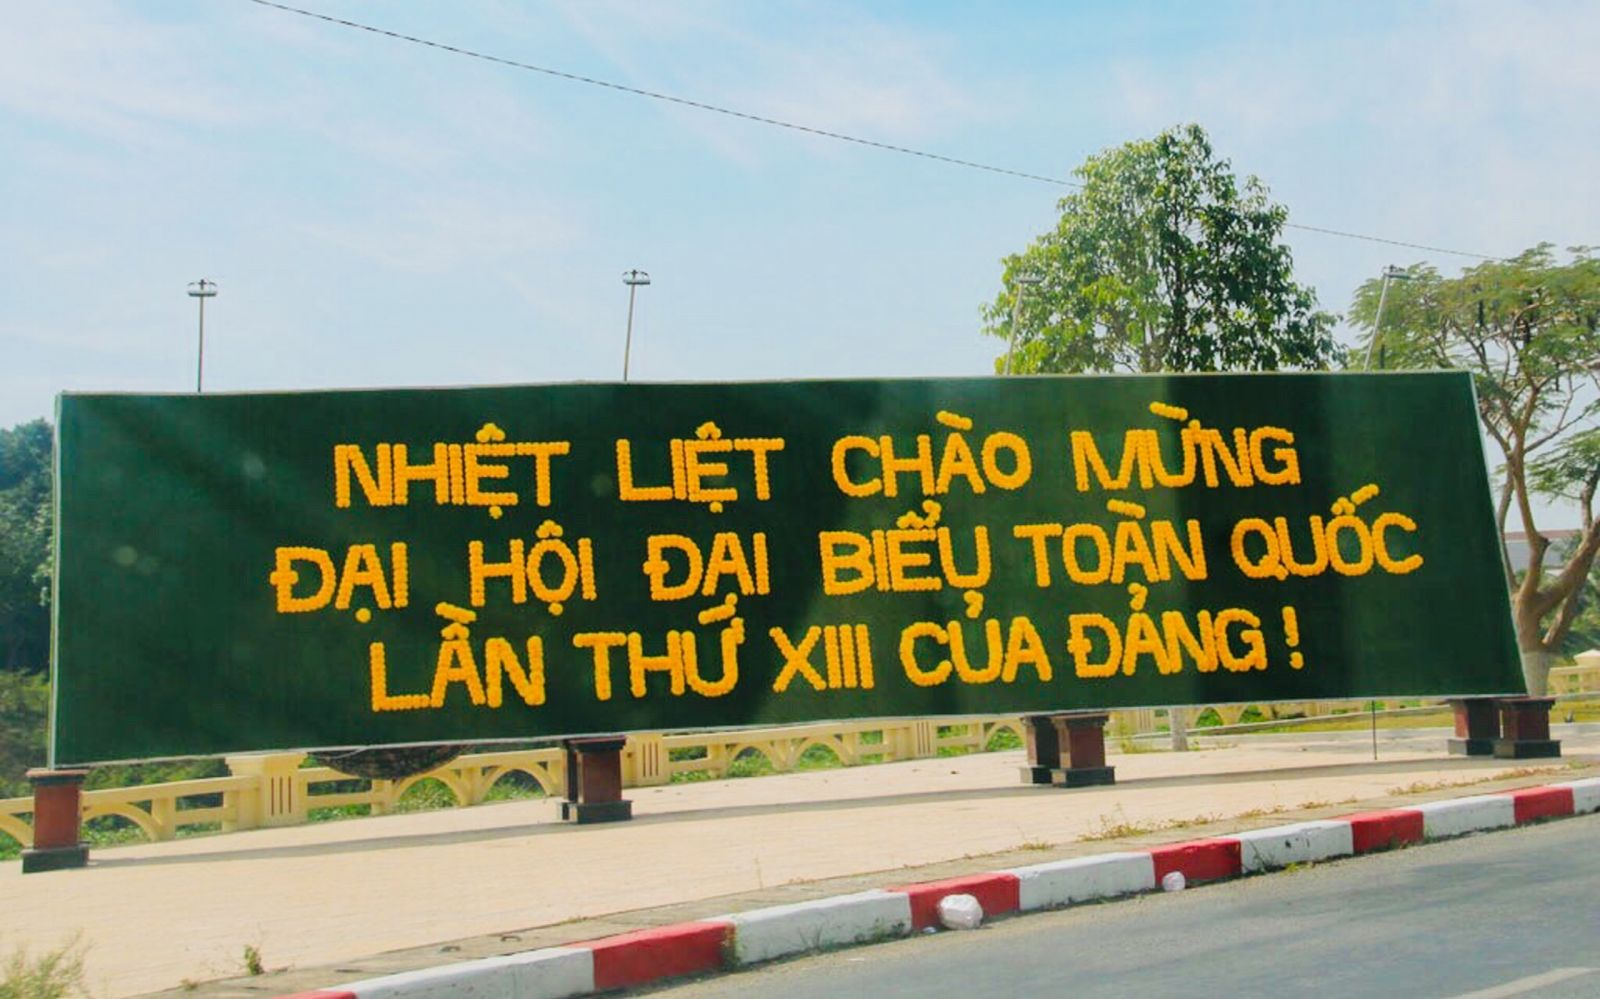 The atmosphere to welcome the XIIIth National Congress of the Party in Kien Tuong town